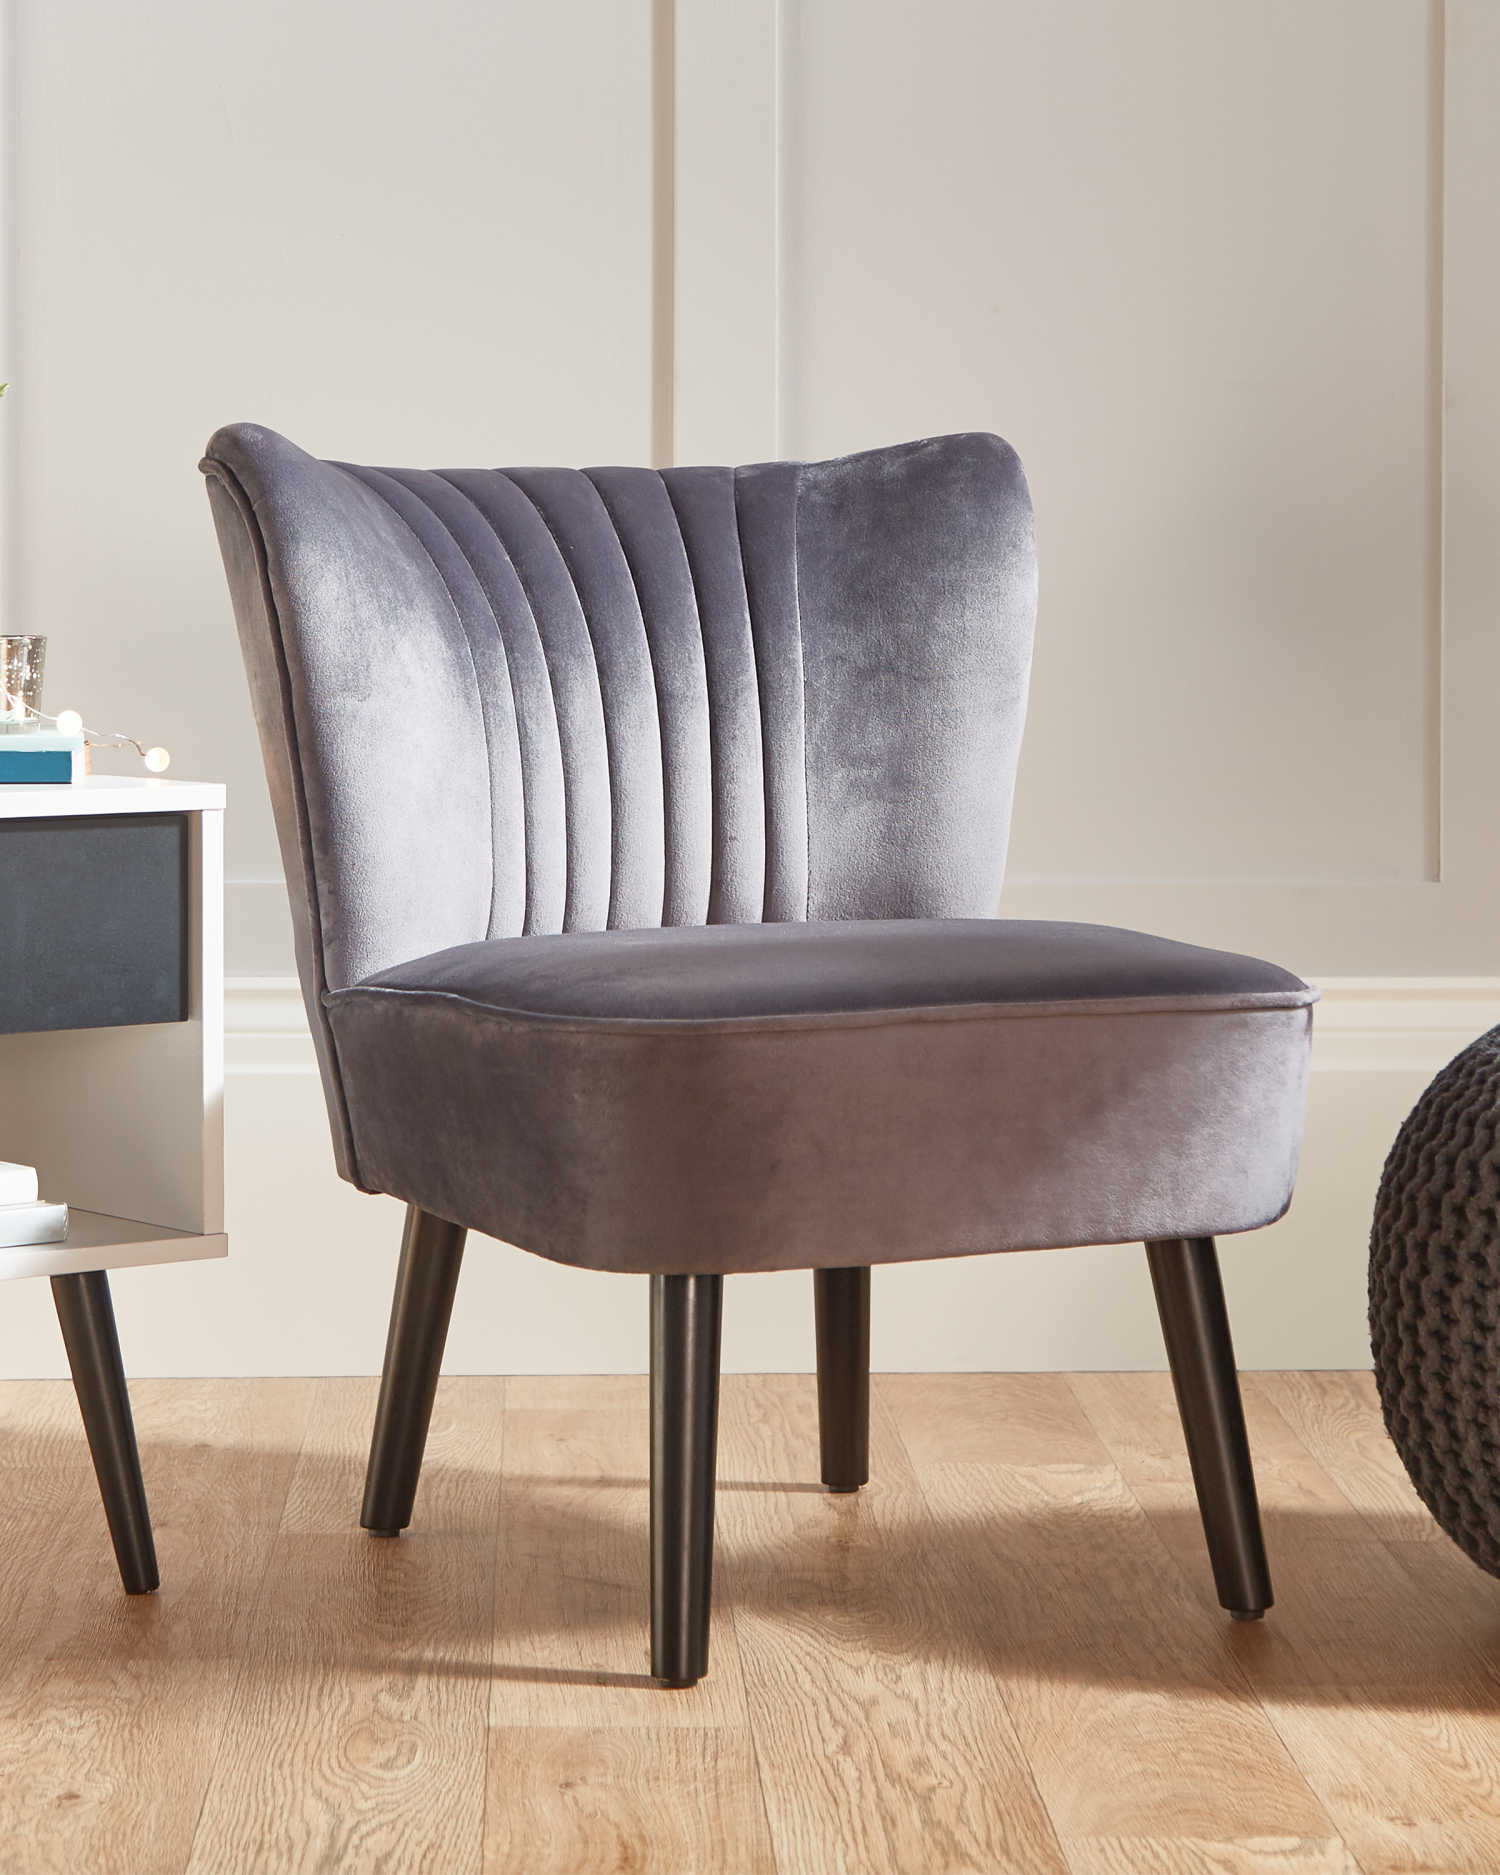 Aldi Is Selling A Gorgeous Designer Look Velvet Chair For